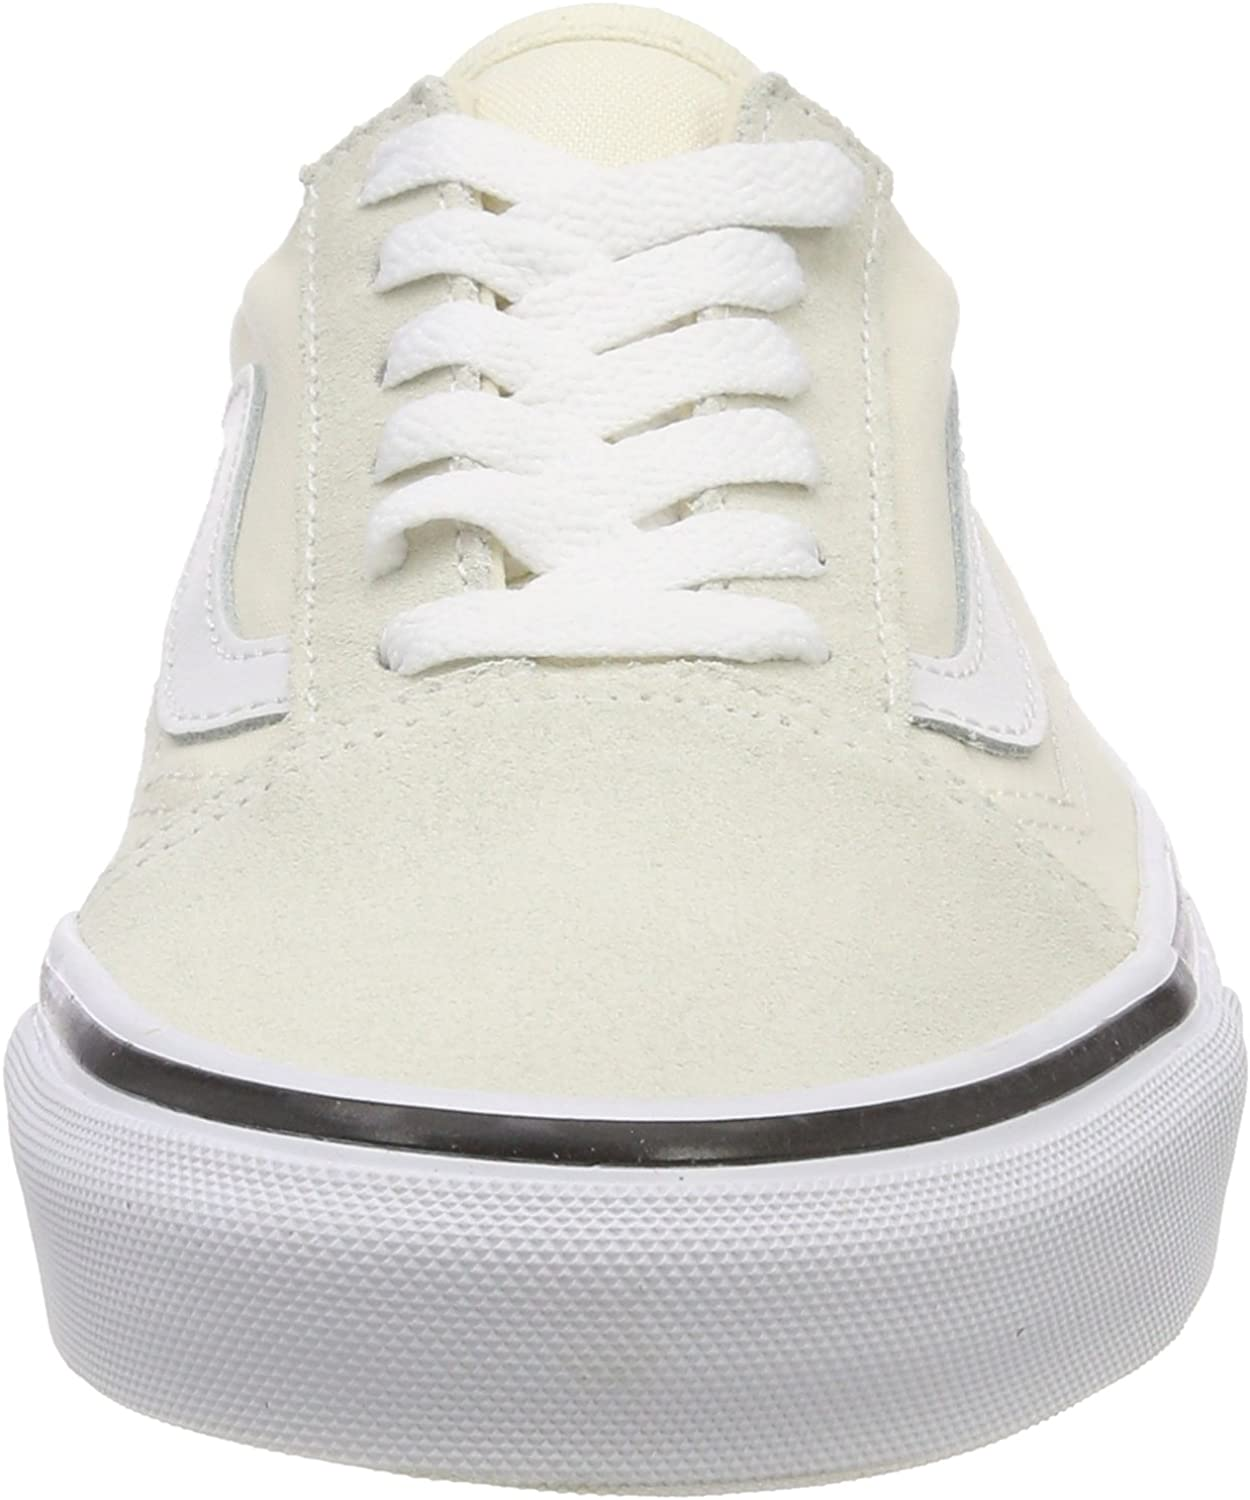 Vans Damen Old Skool Laufschuhe, Rosa Frappe True White, 40 EU